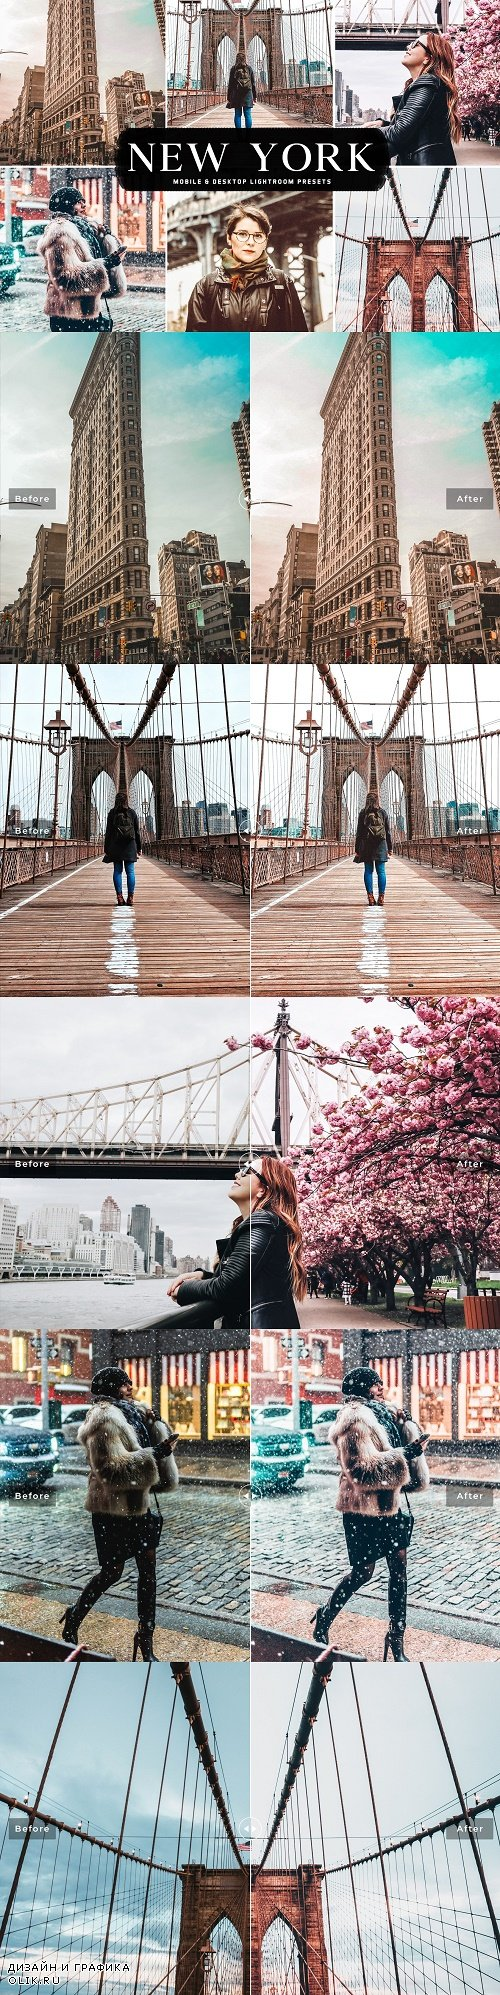 New York Lightroom Presets - 3884920